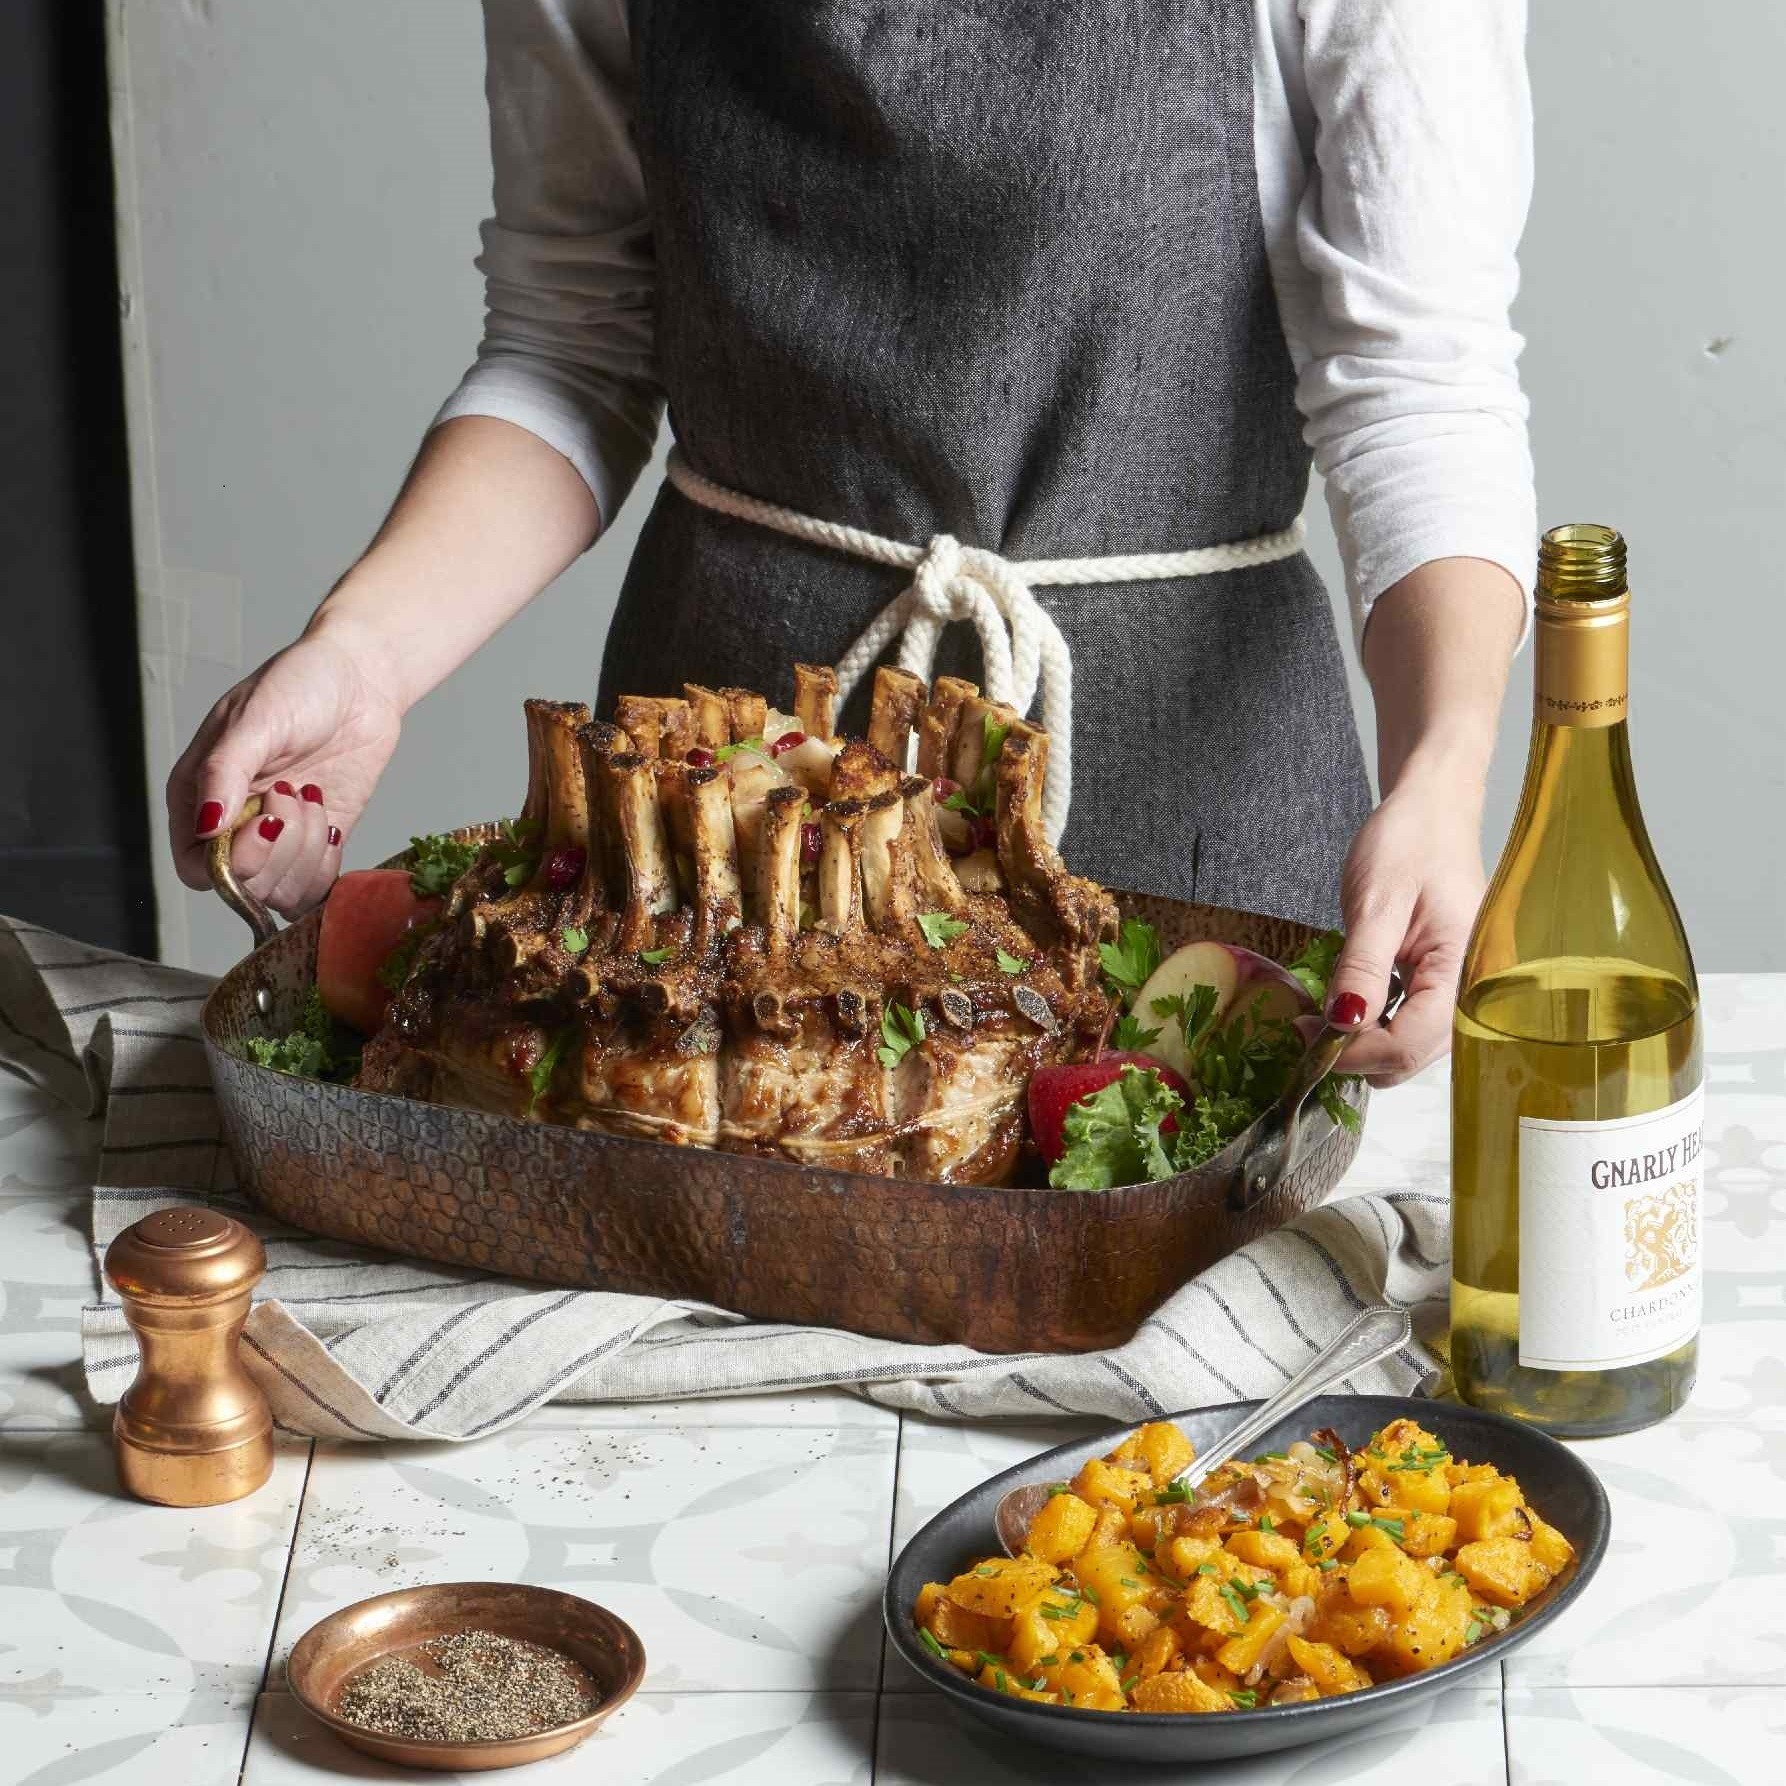 crown roast of pork in a roasting pan with side dishes